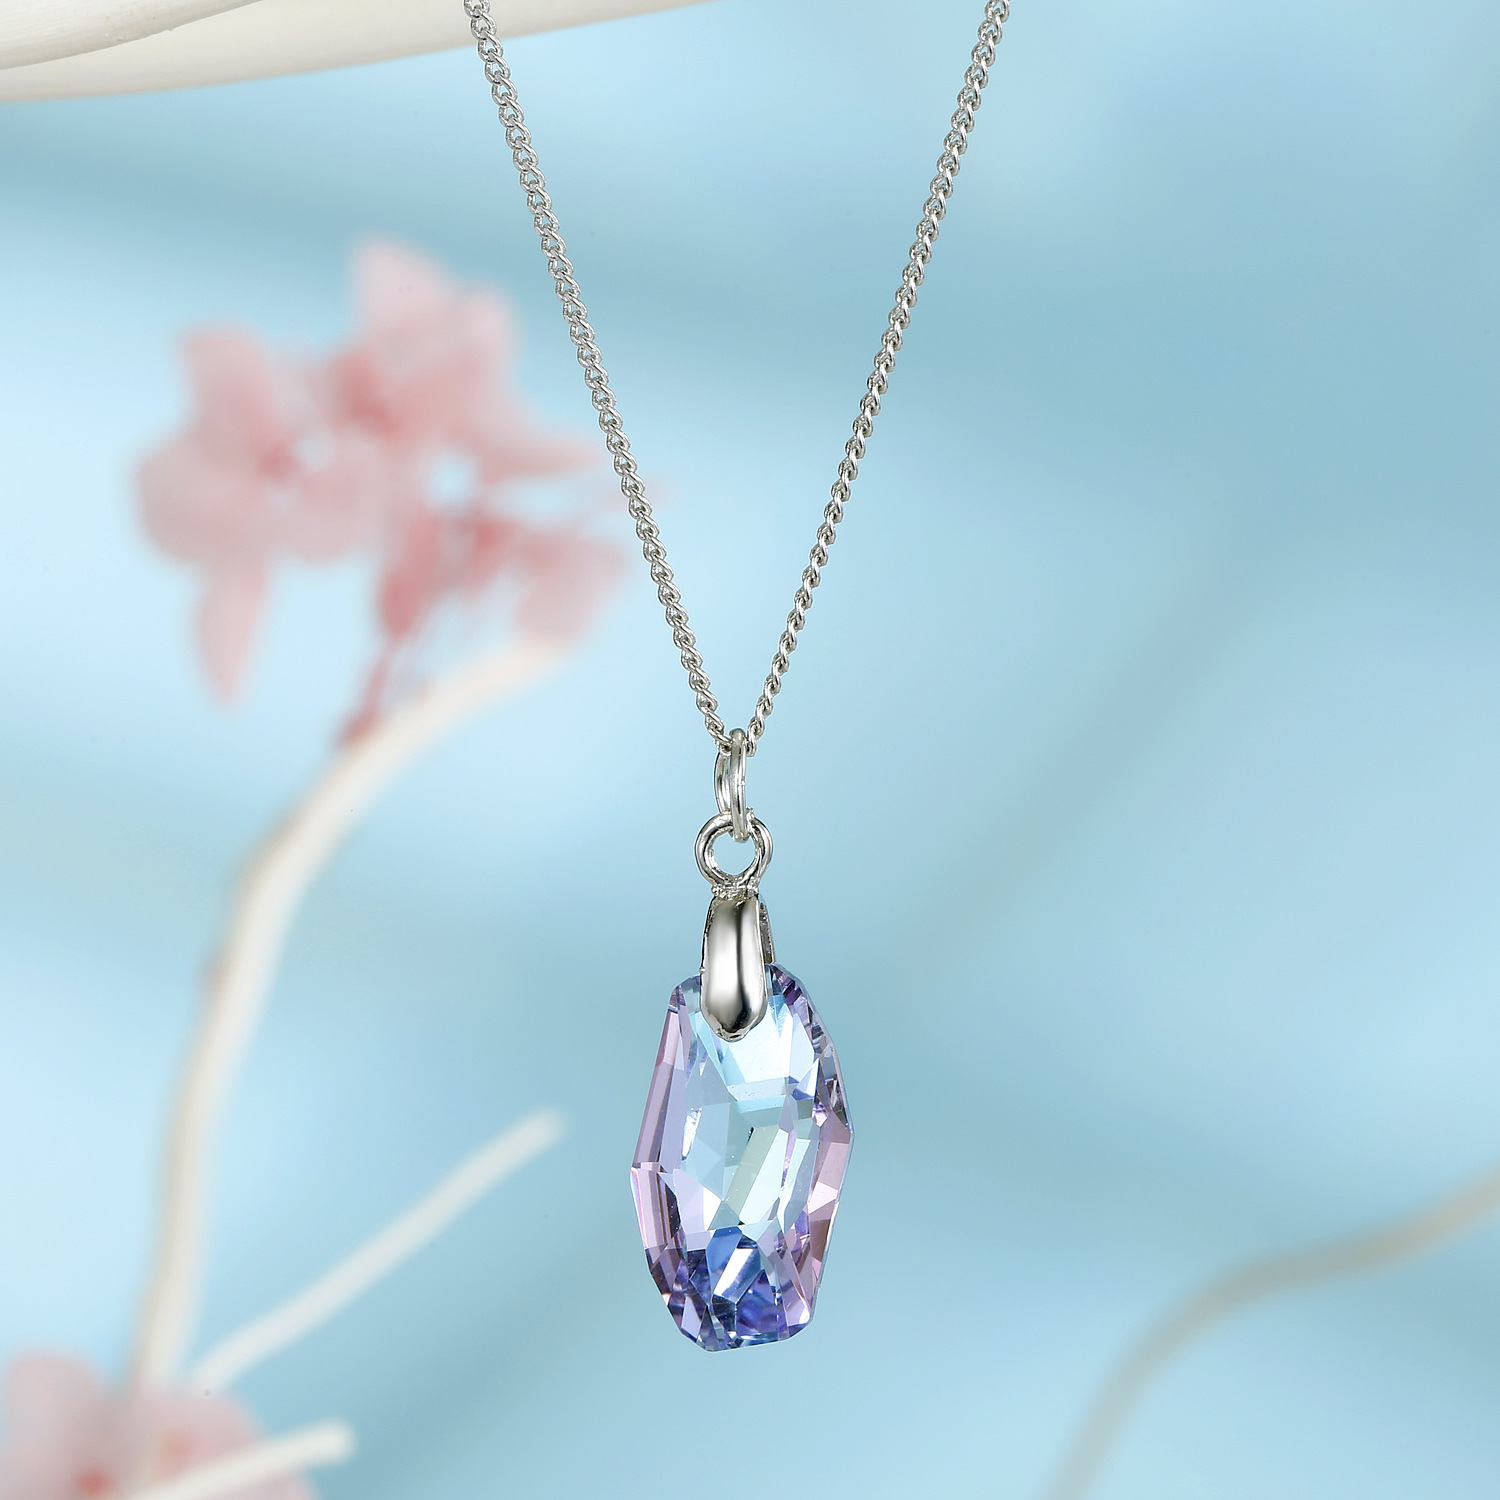 Jewelry ladies necklace imitation zircon necklace meteor crystal pendant clavicle chain NHGO202974